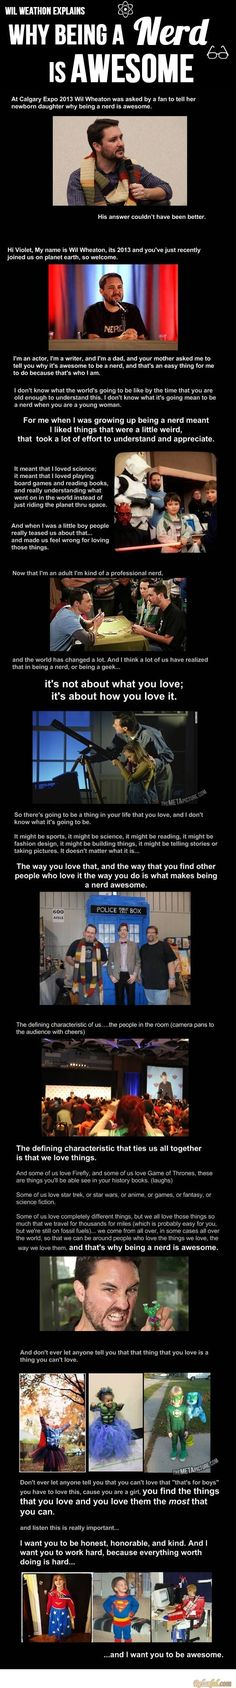 """Wil Wheaton explains why being a nerd is awesome. <---To sound even more like a nerd (hehe), the last bit reminded me of something Ahsoka says in Star Wars Rebels, """"Nothing worth doing ever is [easy]."""" Mx"""